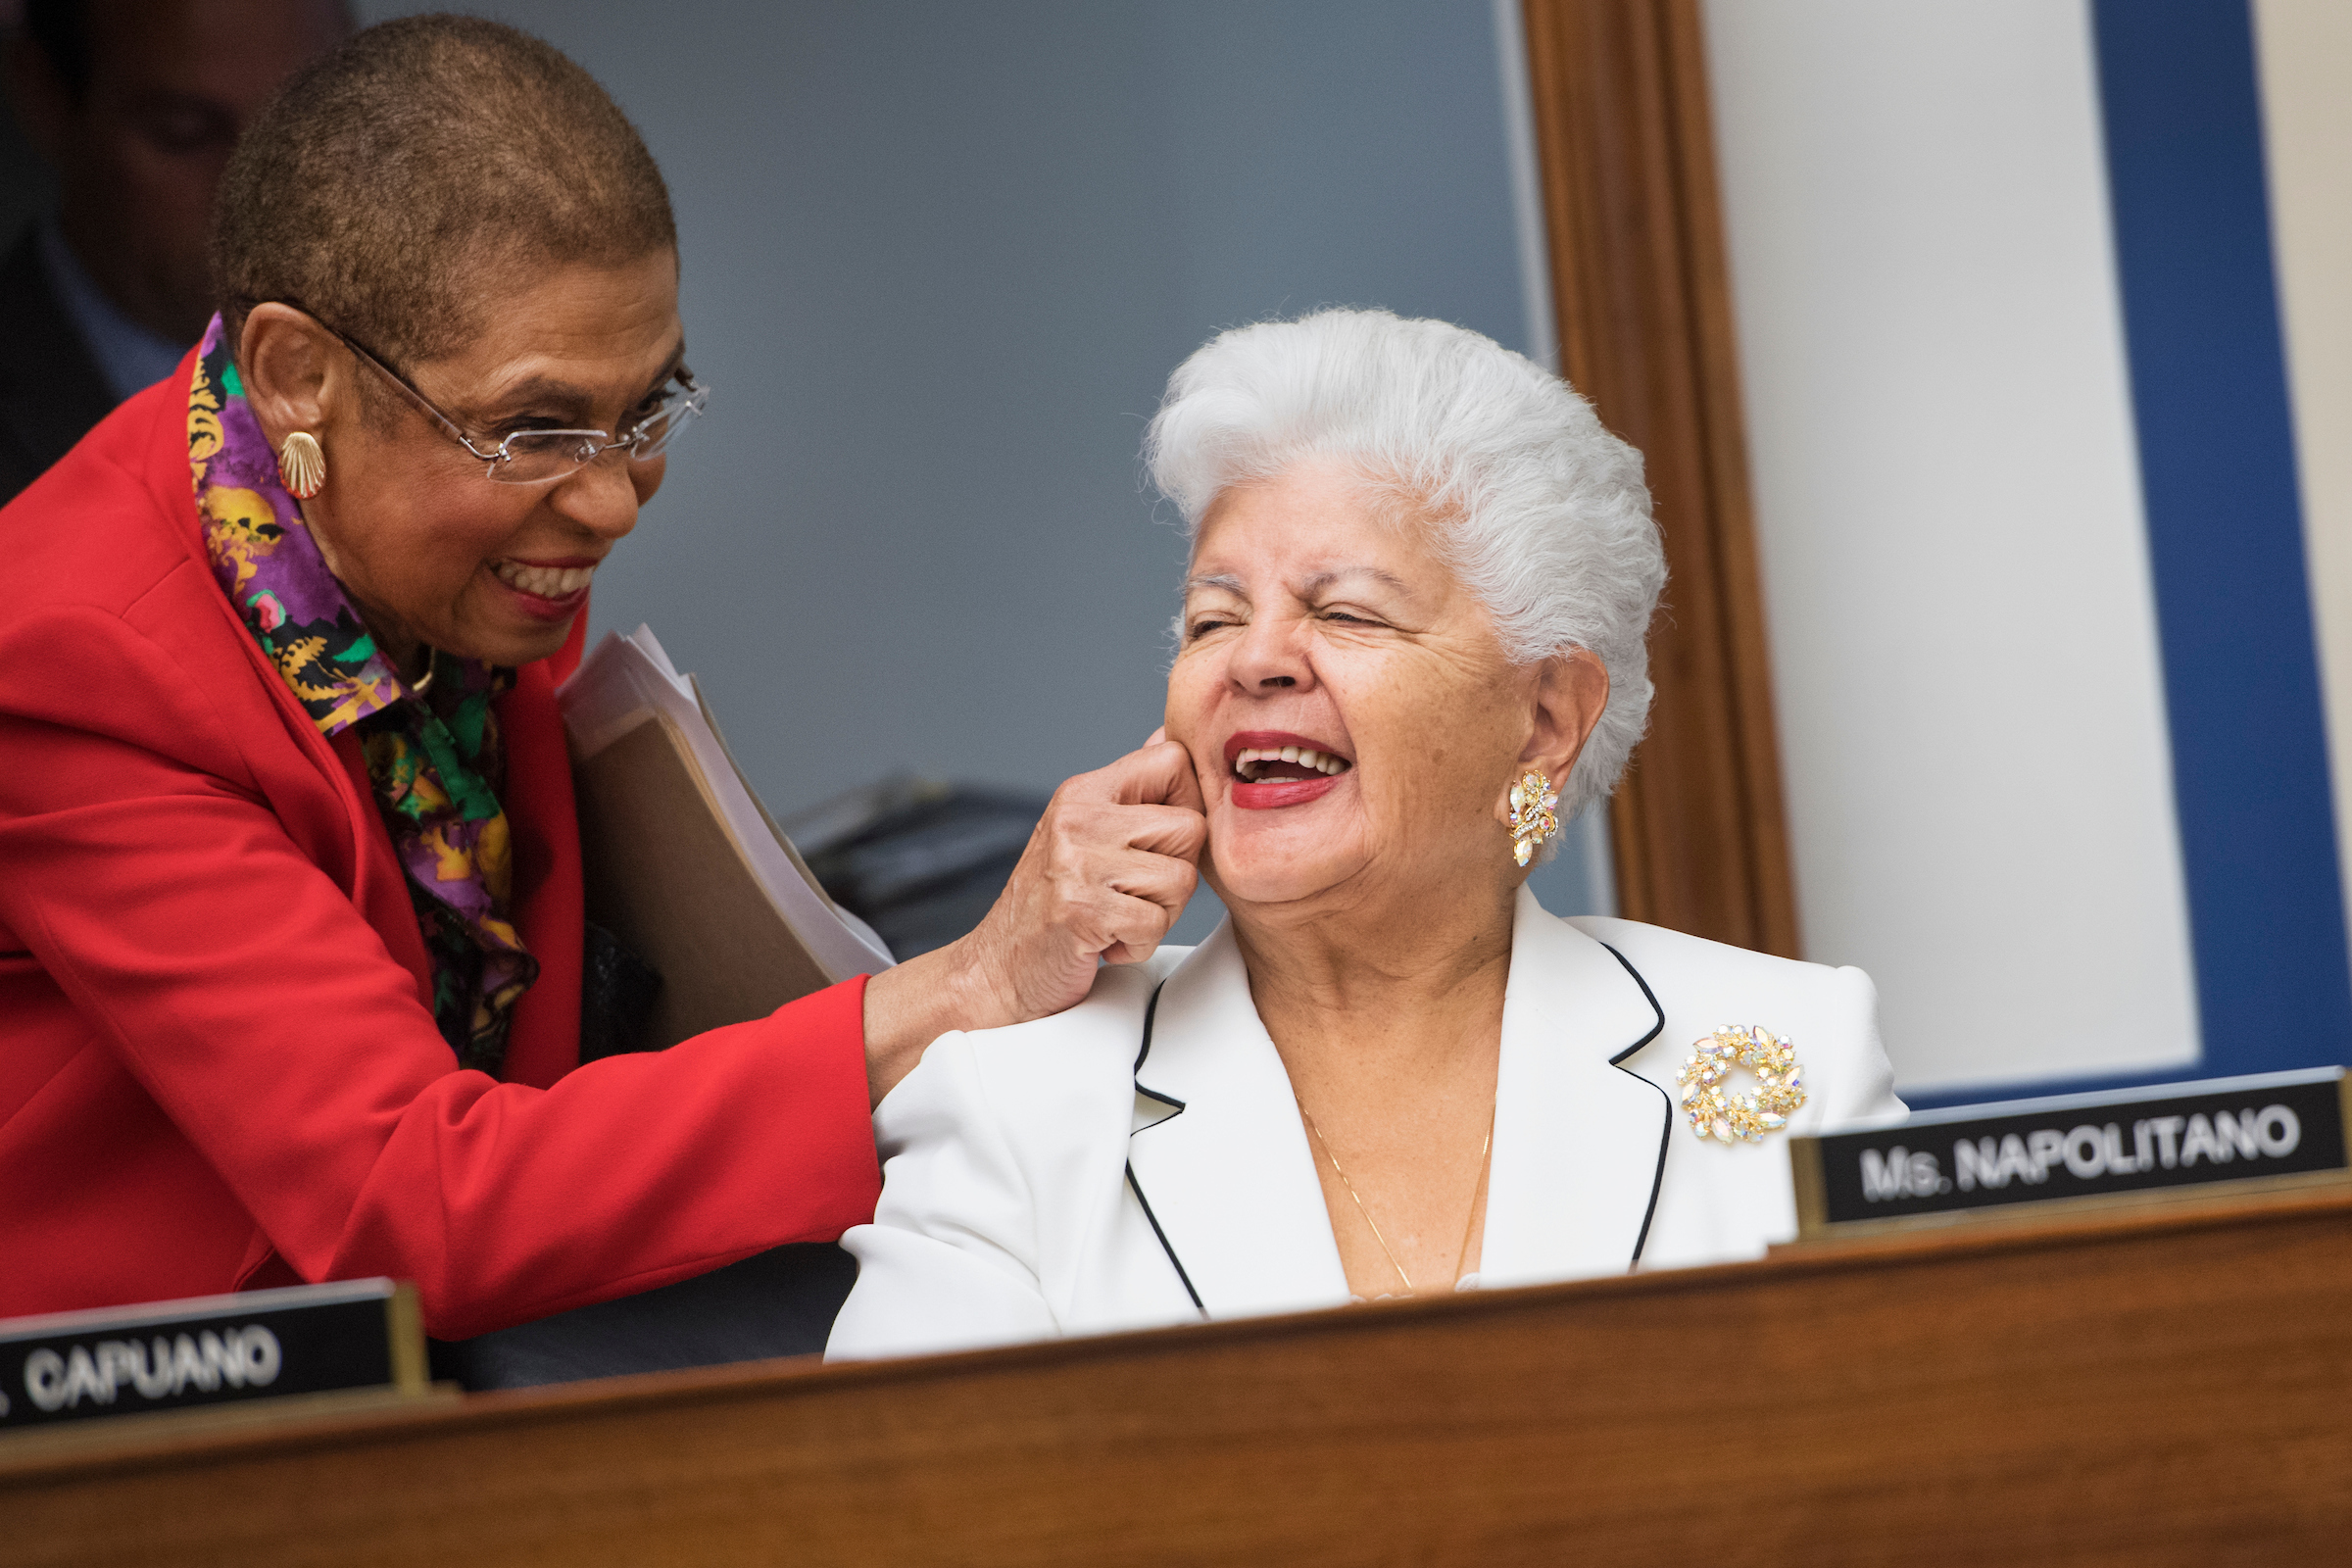 Del. Eleanor Holmes Norton, D- D.C., pinches the cheek of Rep. Grace Napolitano, D-Calif., during a House Transportation and Infrastructure Committee markup in Rayburn Building, September 14, 2016. (Photo By Tom Williams/CQ Roll Call)